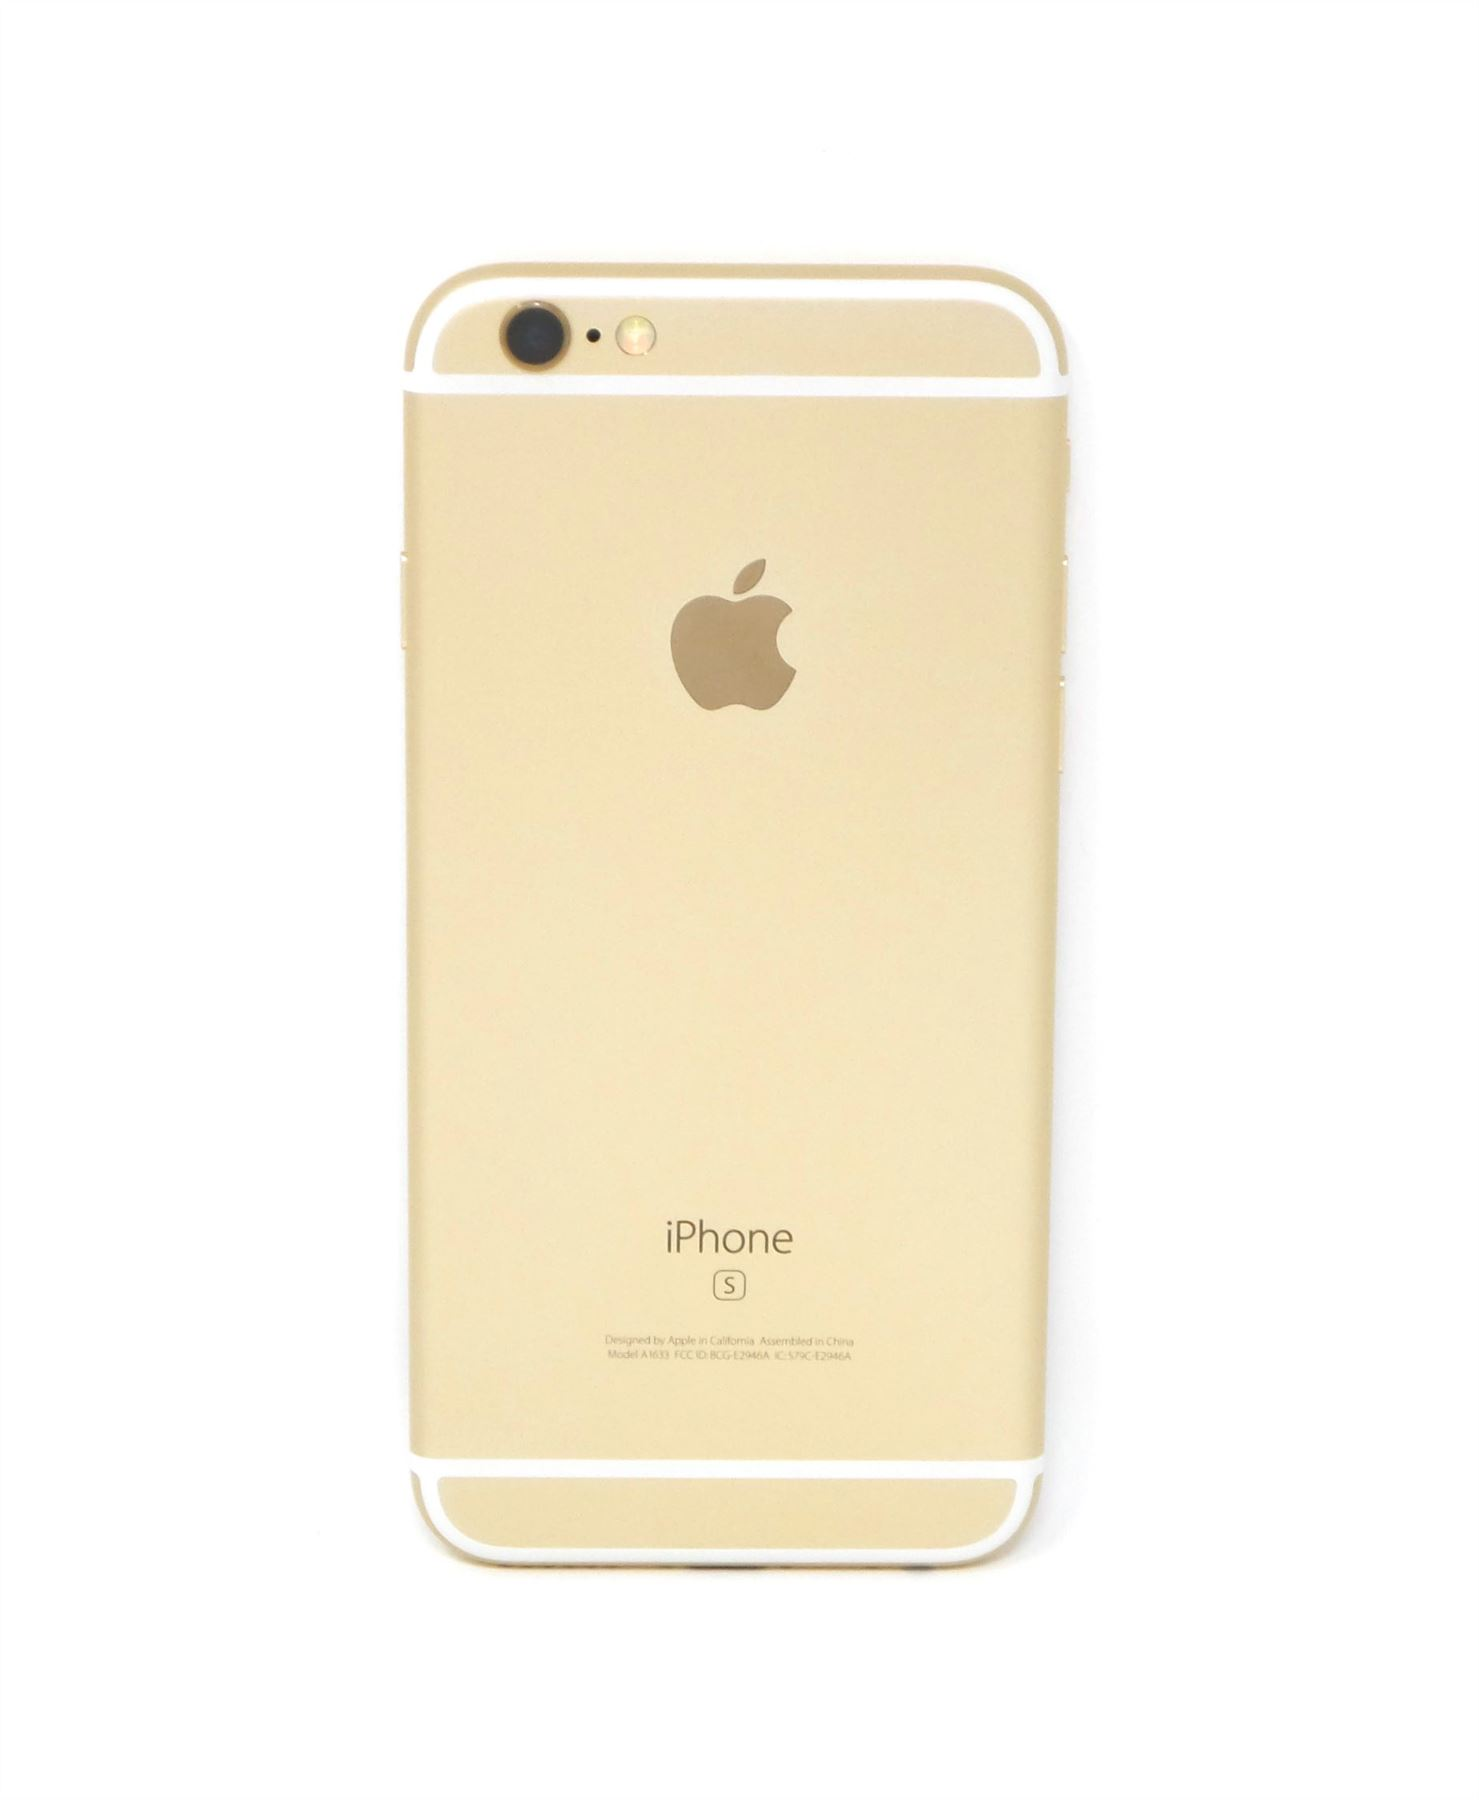 Apple-iPhone-6s-Carrier-Options-AT-amp-T-T-Mobile-Verizon-Unlocked-16-64-128GB-New thumbnail 6